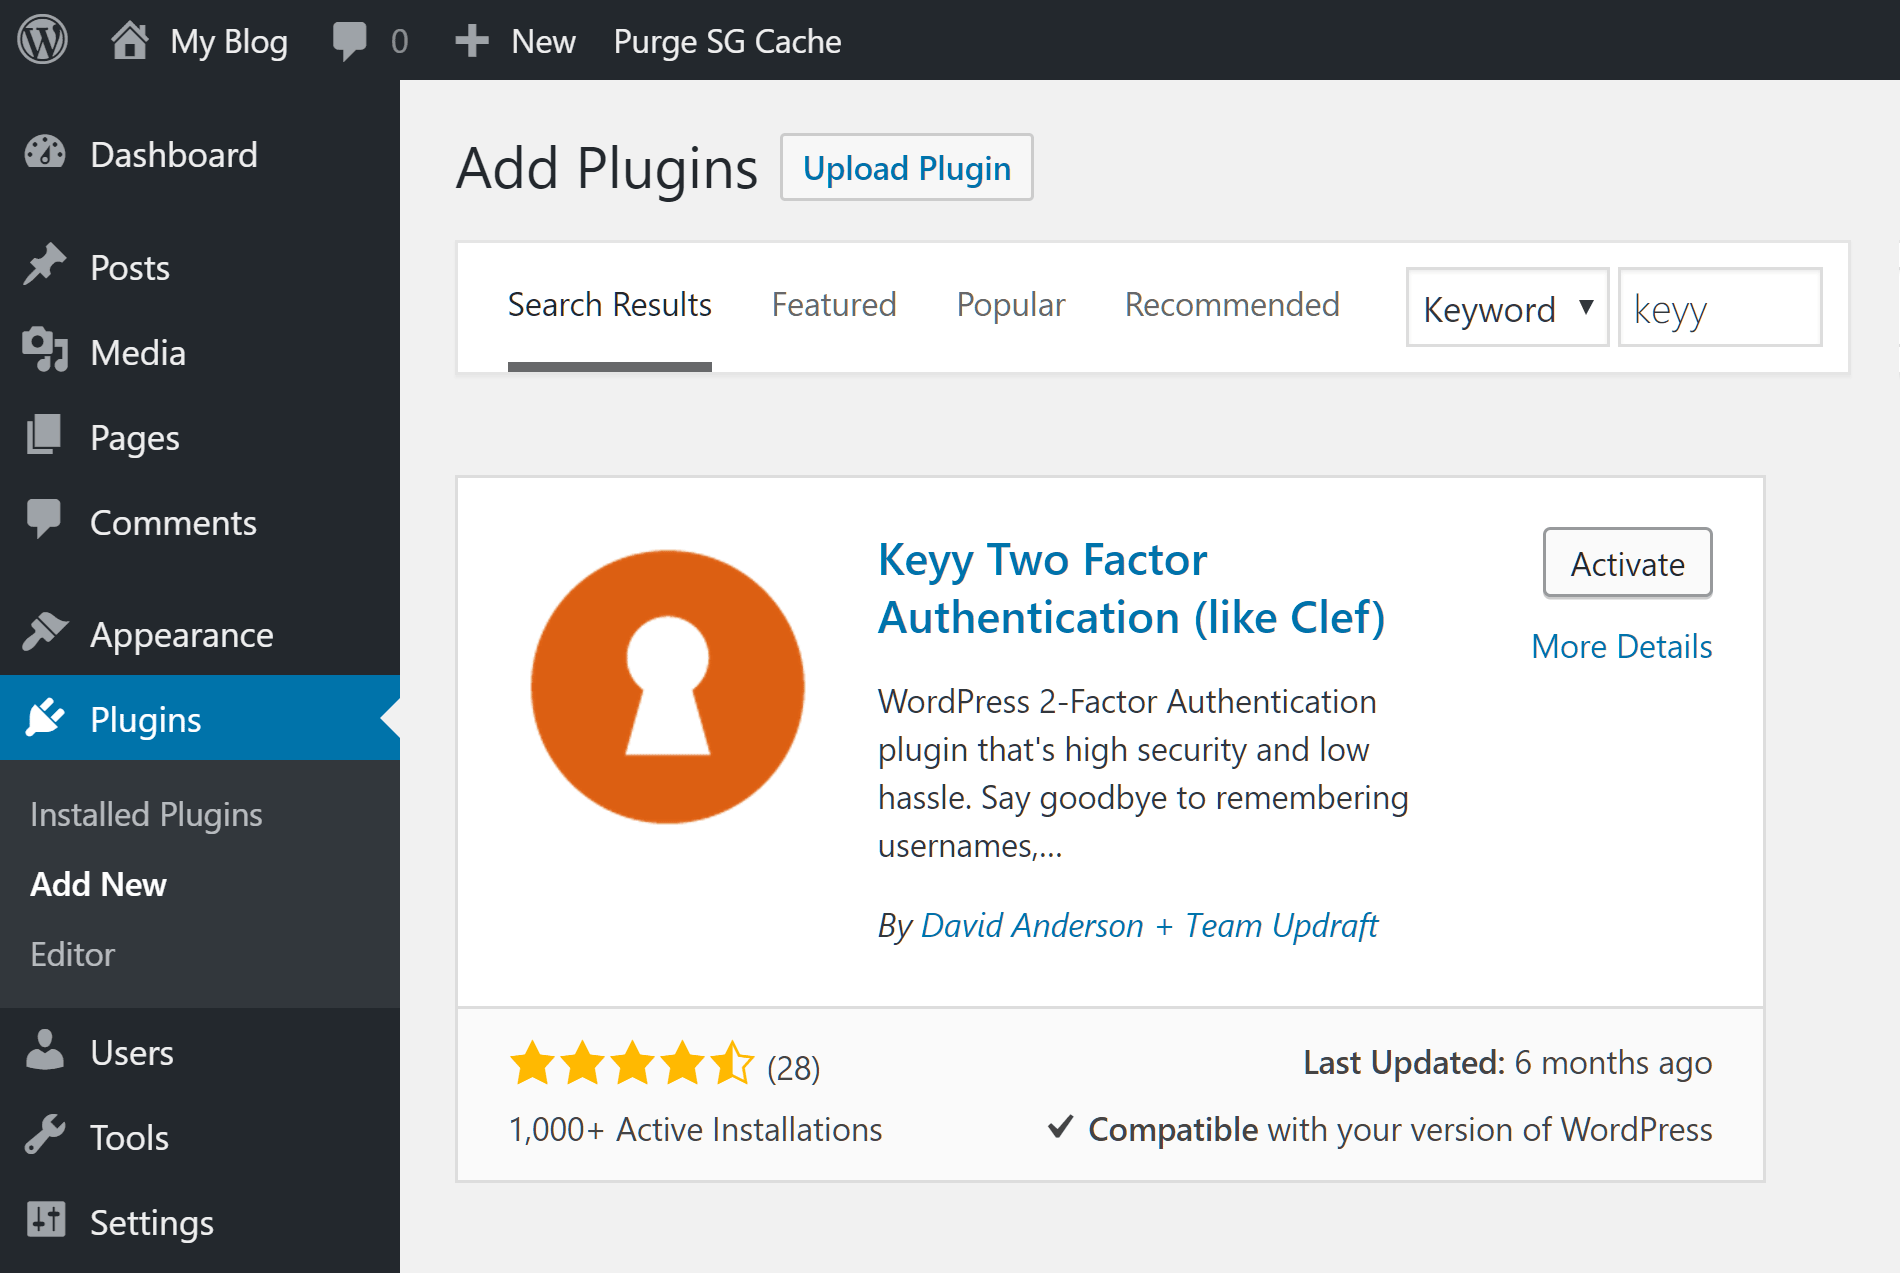 Two Factor Authentication Keyy Plugin Installation